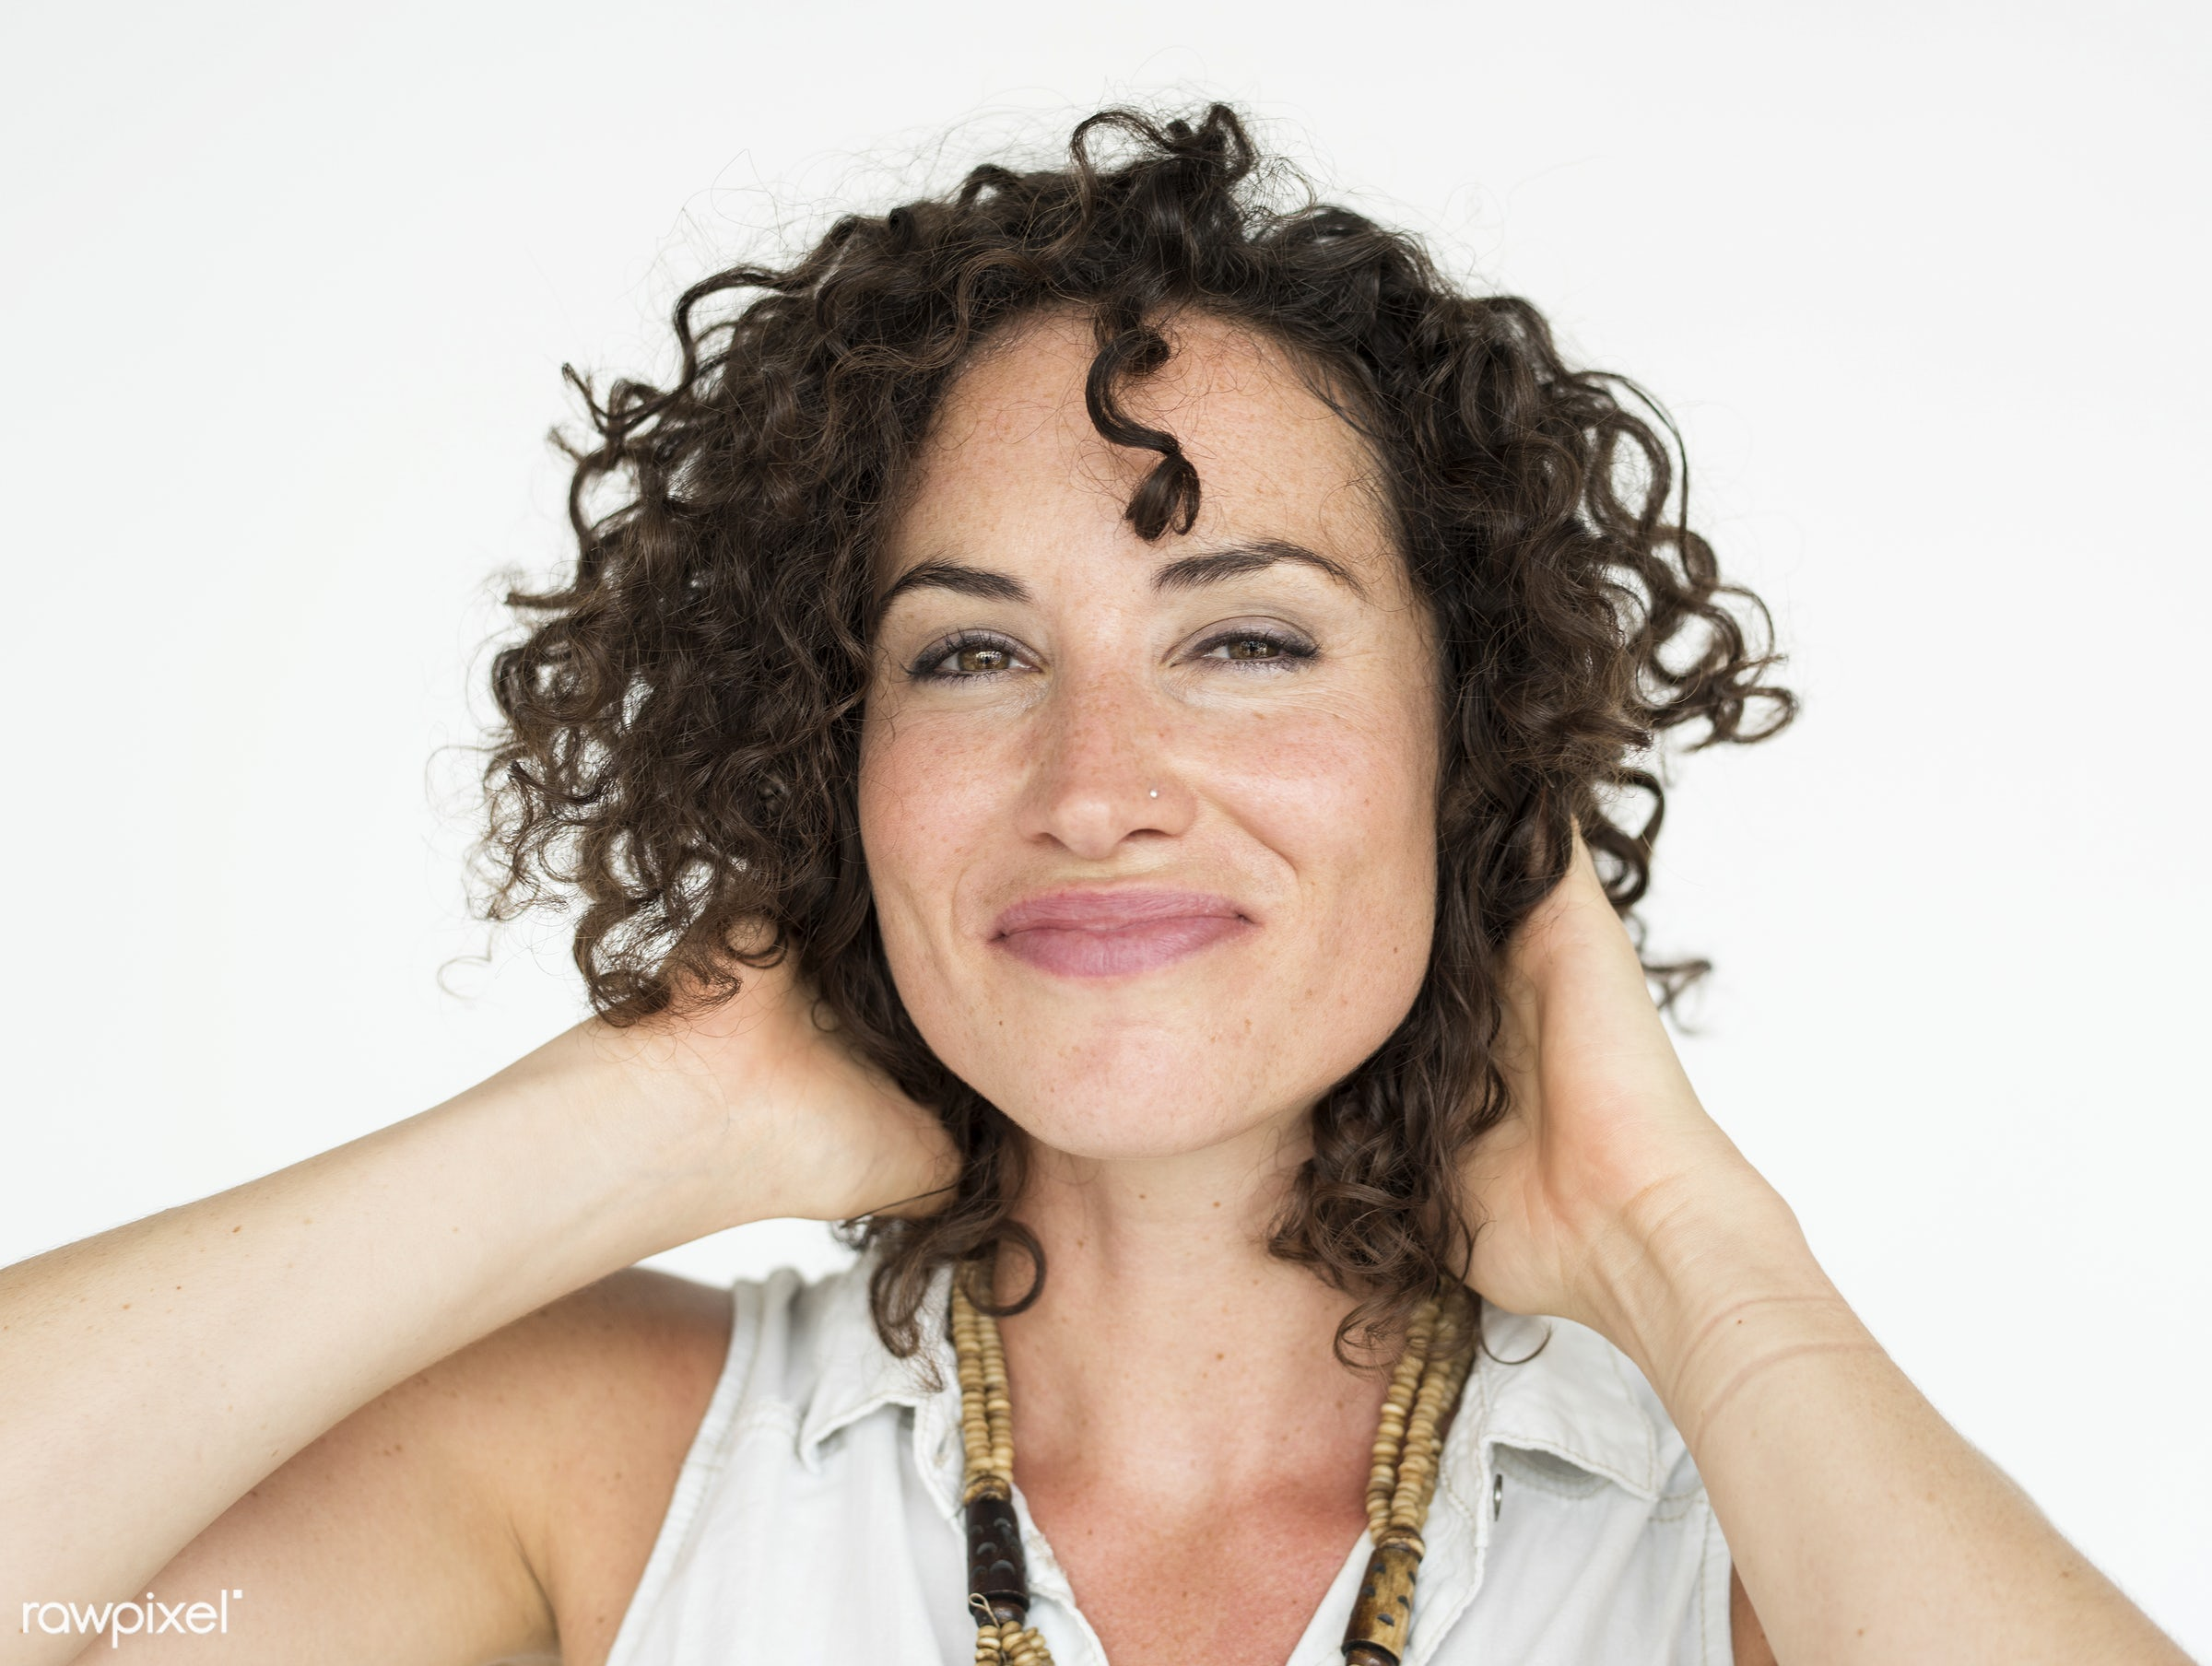 Portrait of beautiful woman with curly hair - studio, expression, person, model, joy, isolated on white, optimistic, race,...